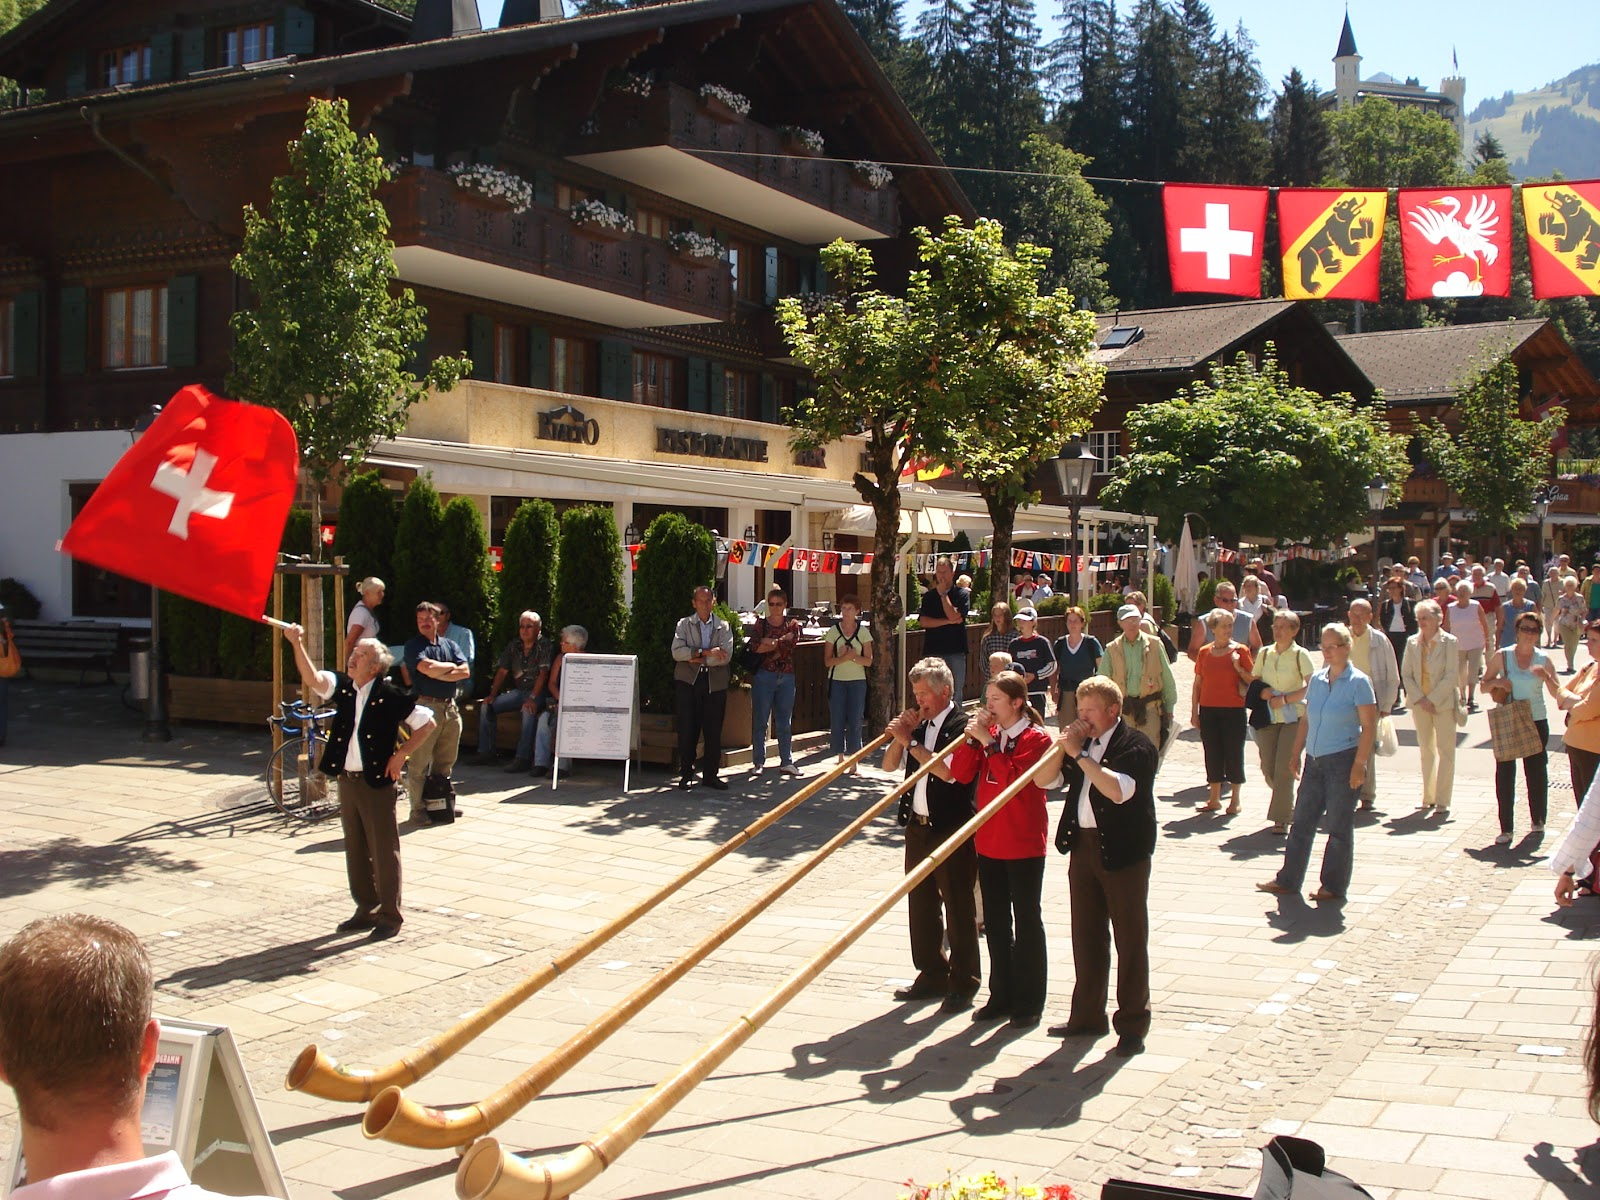 The Alpine culture is alive and well in Gstaad! Photo: Gstaad Saanenland Tourismus.